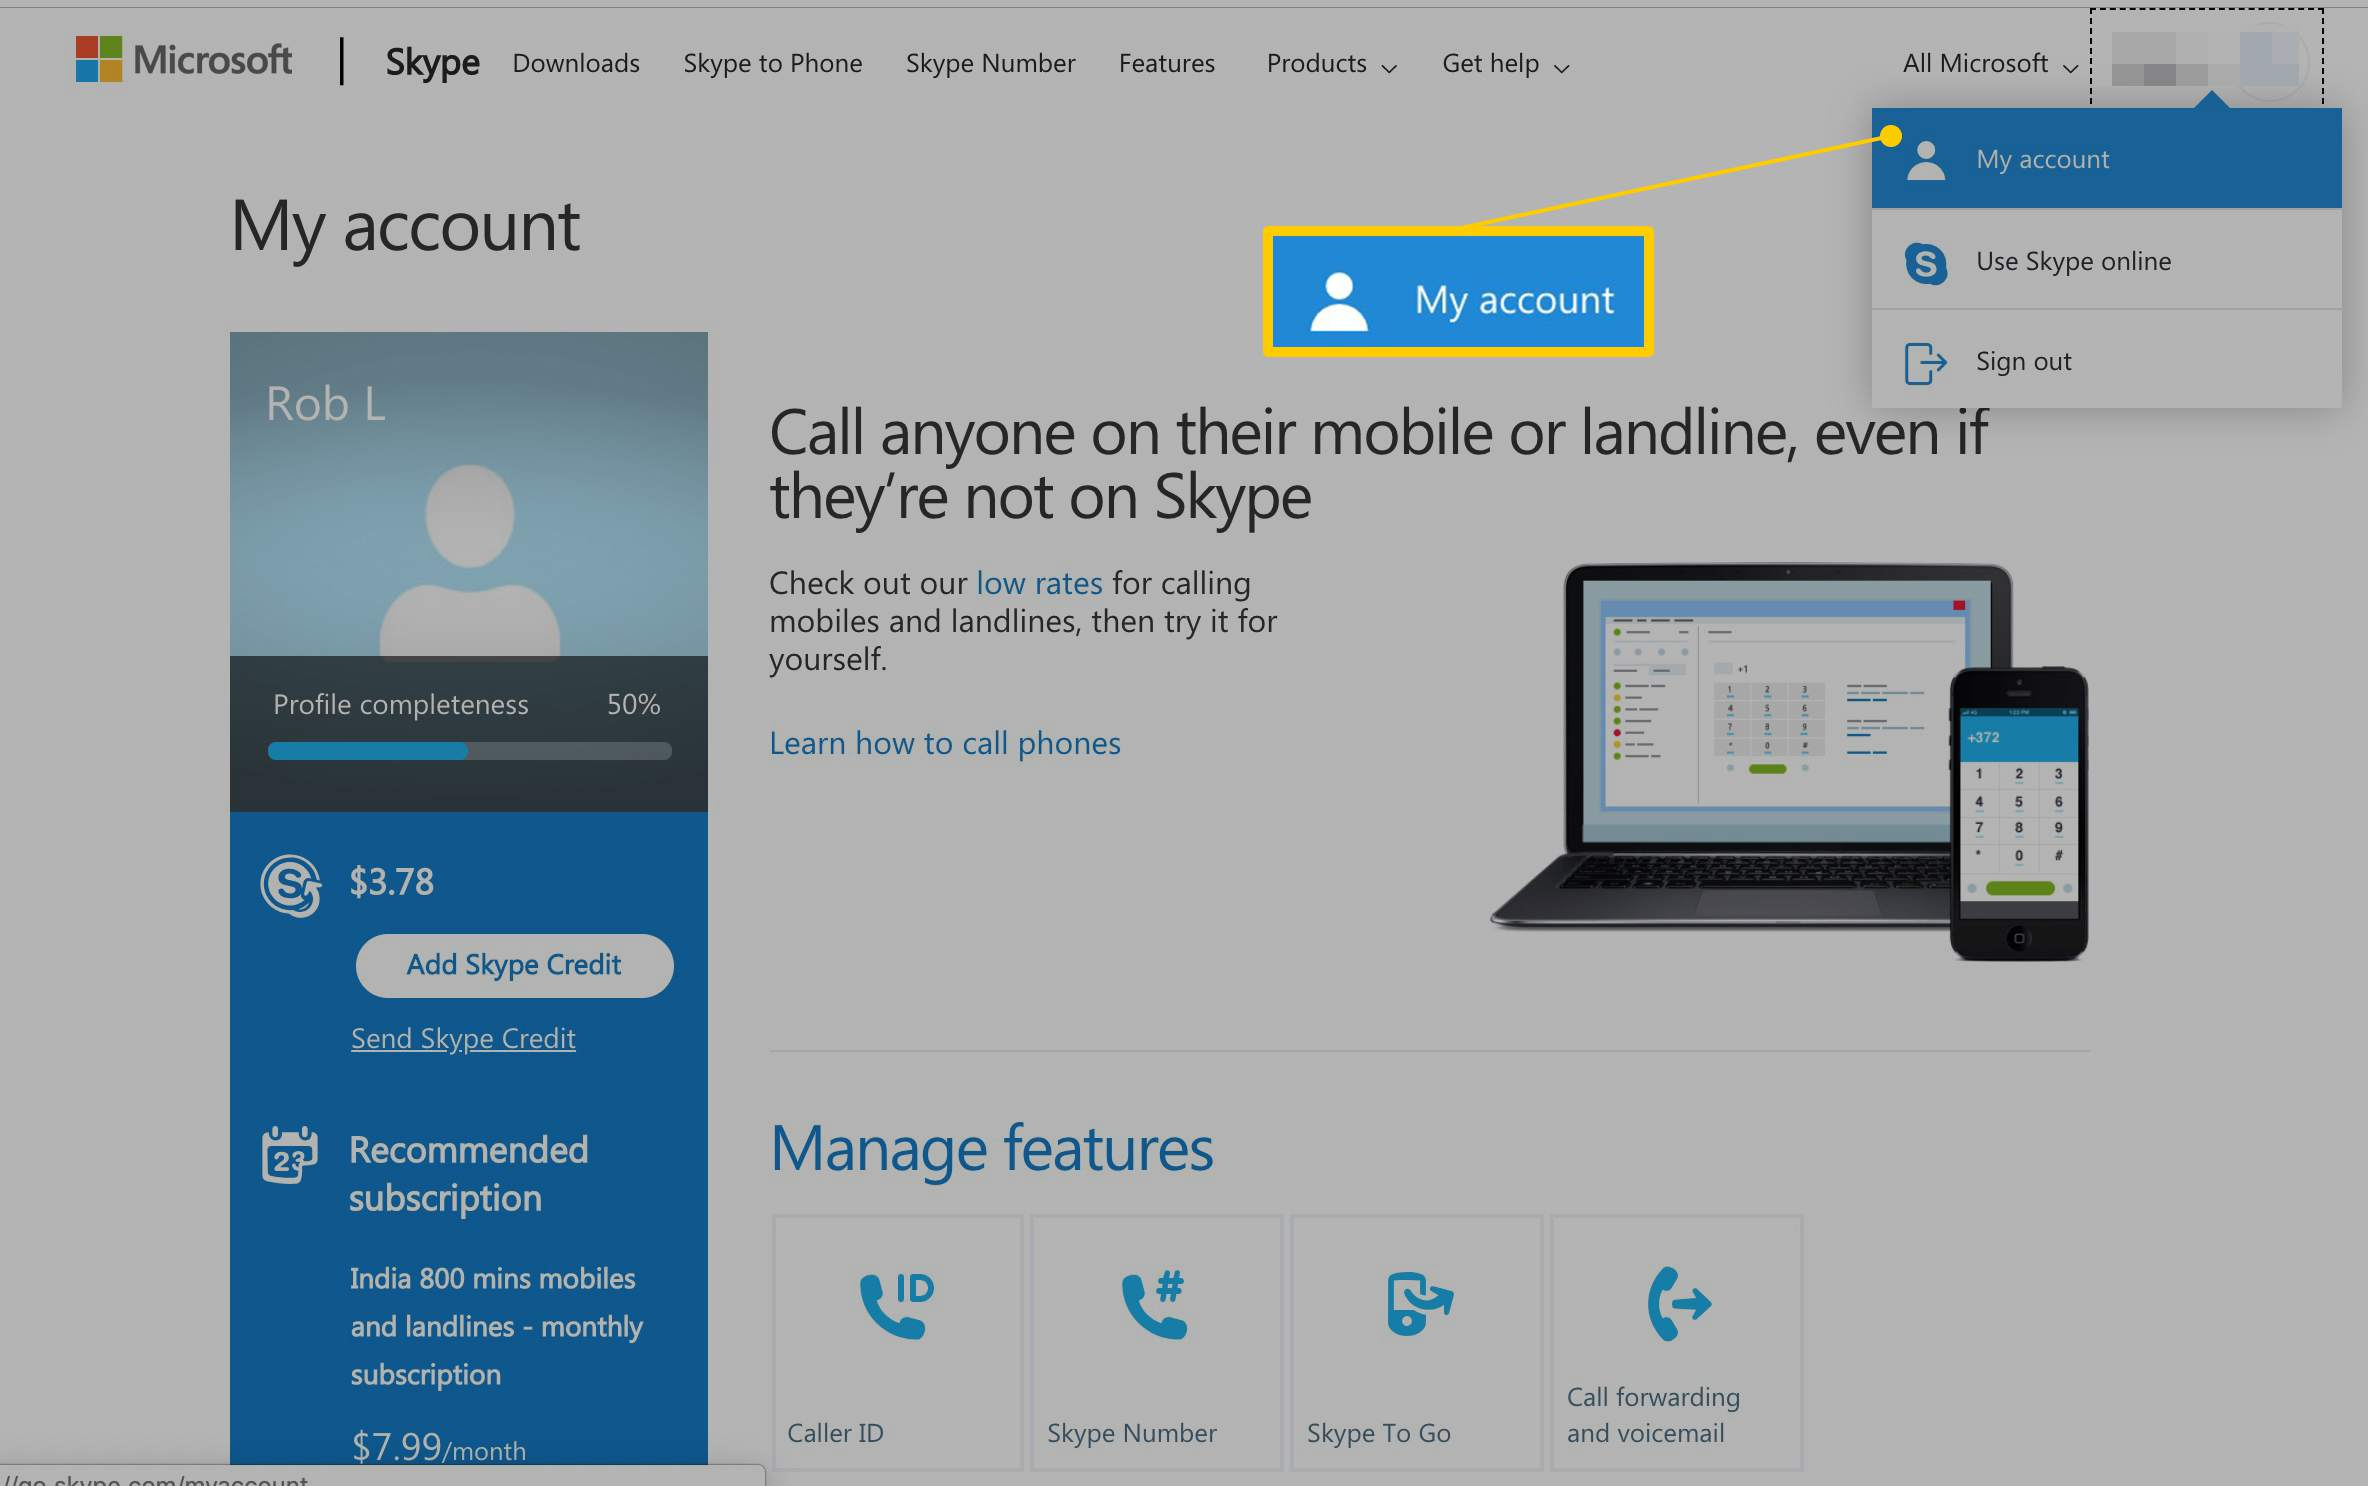 How to Change Your Skype Username